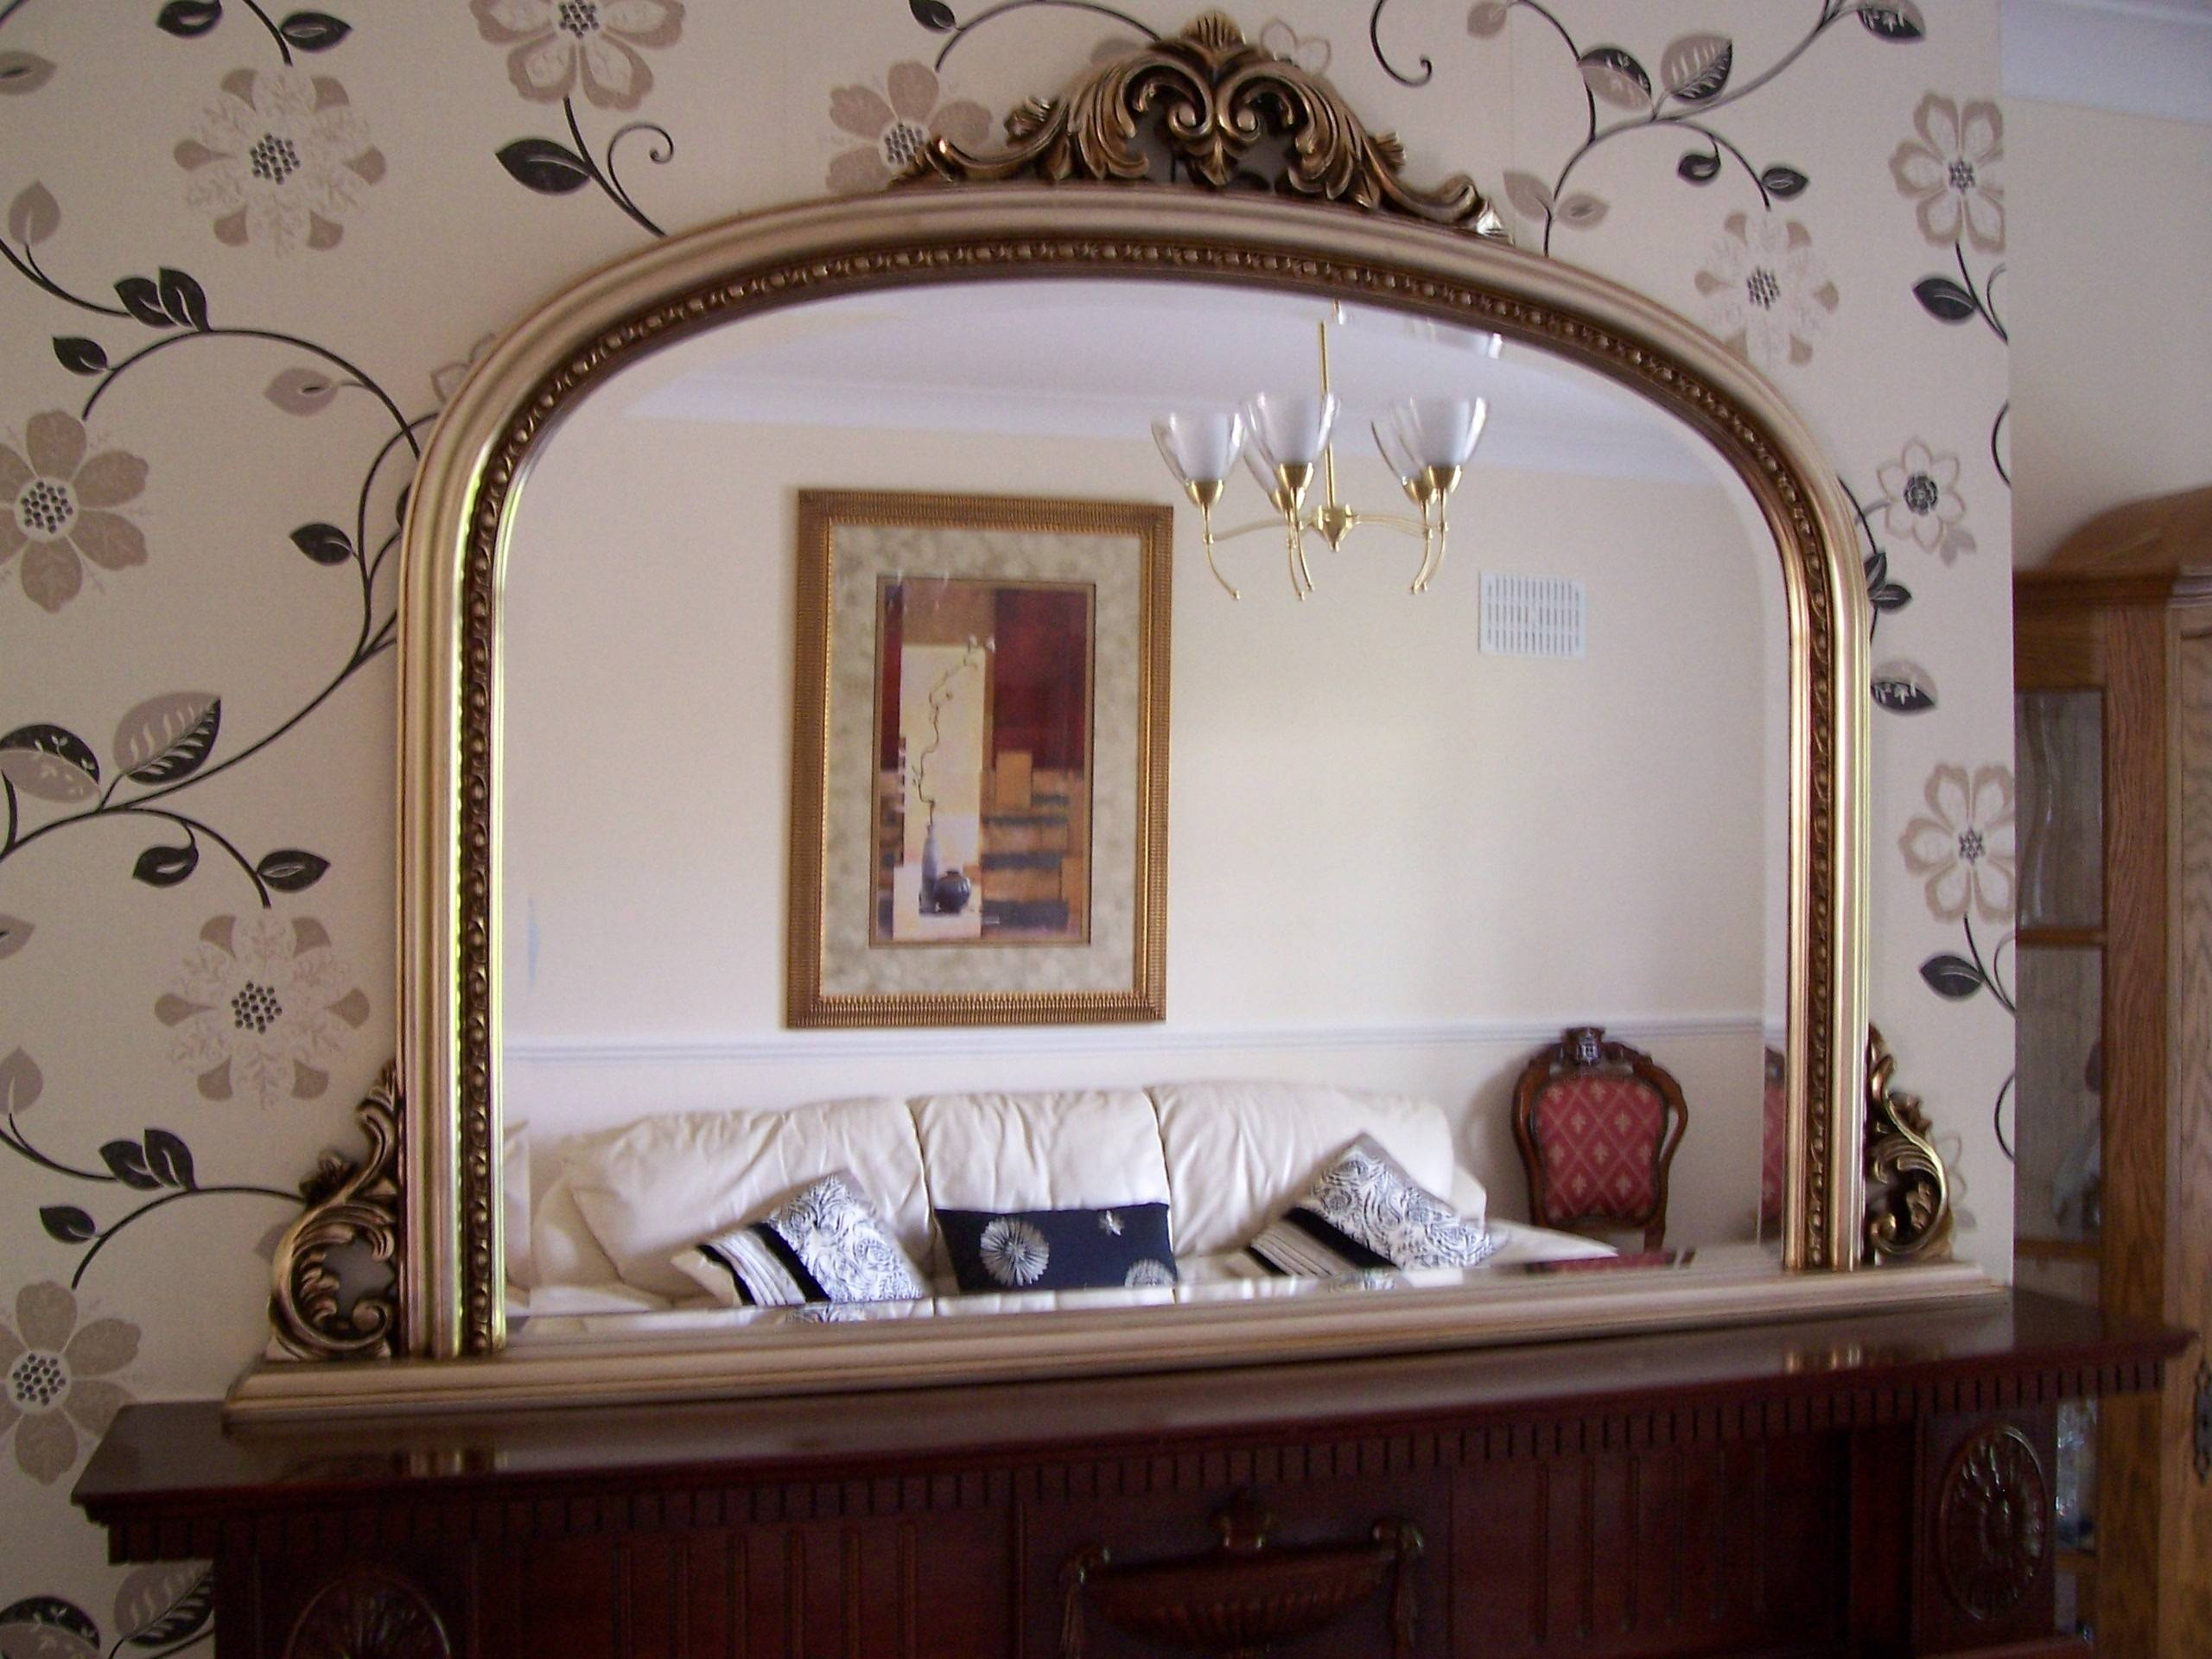 Crinken Glass with regard to Overmantel Mirrors (Image 6 of 25)